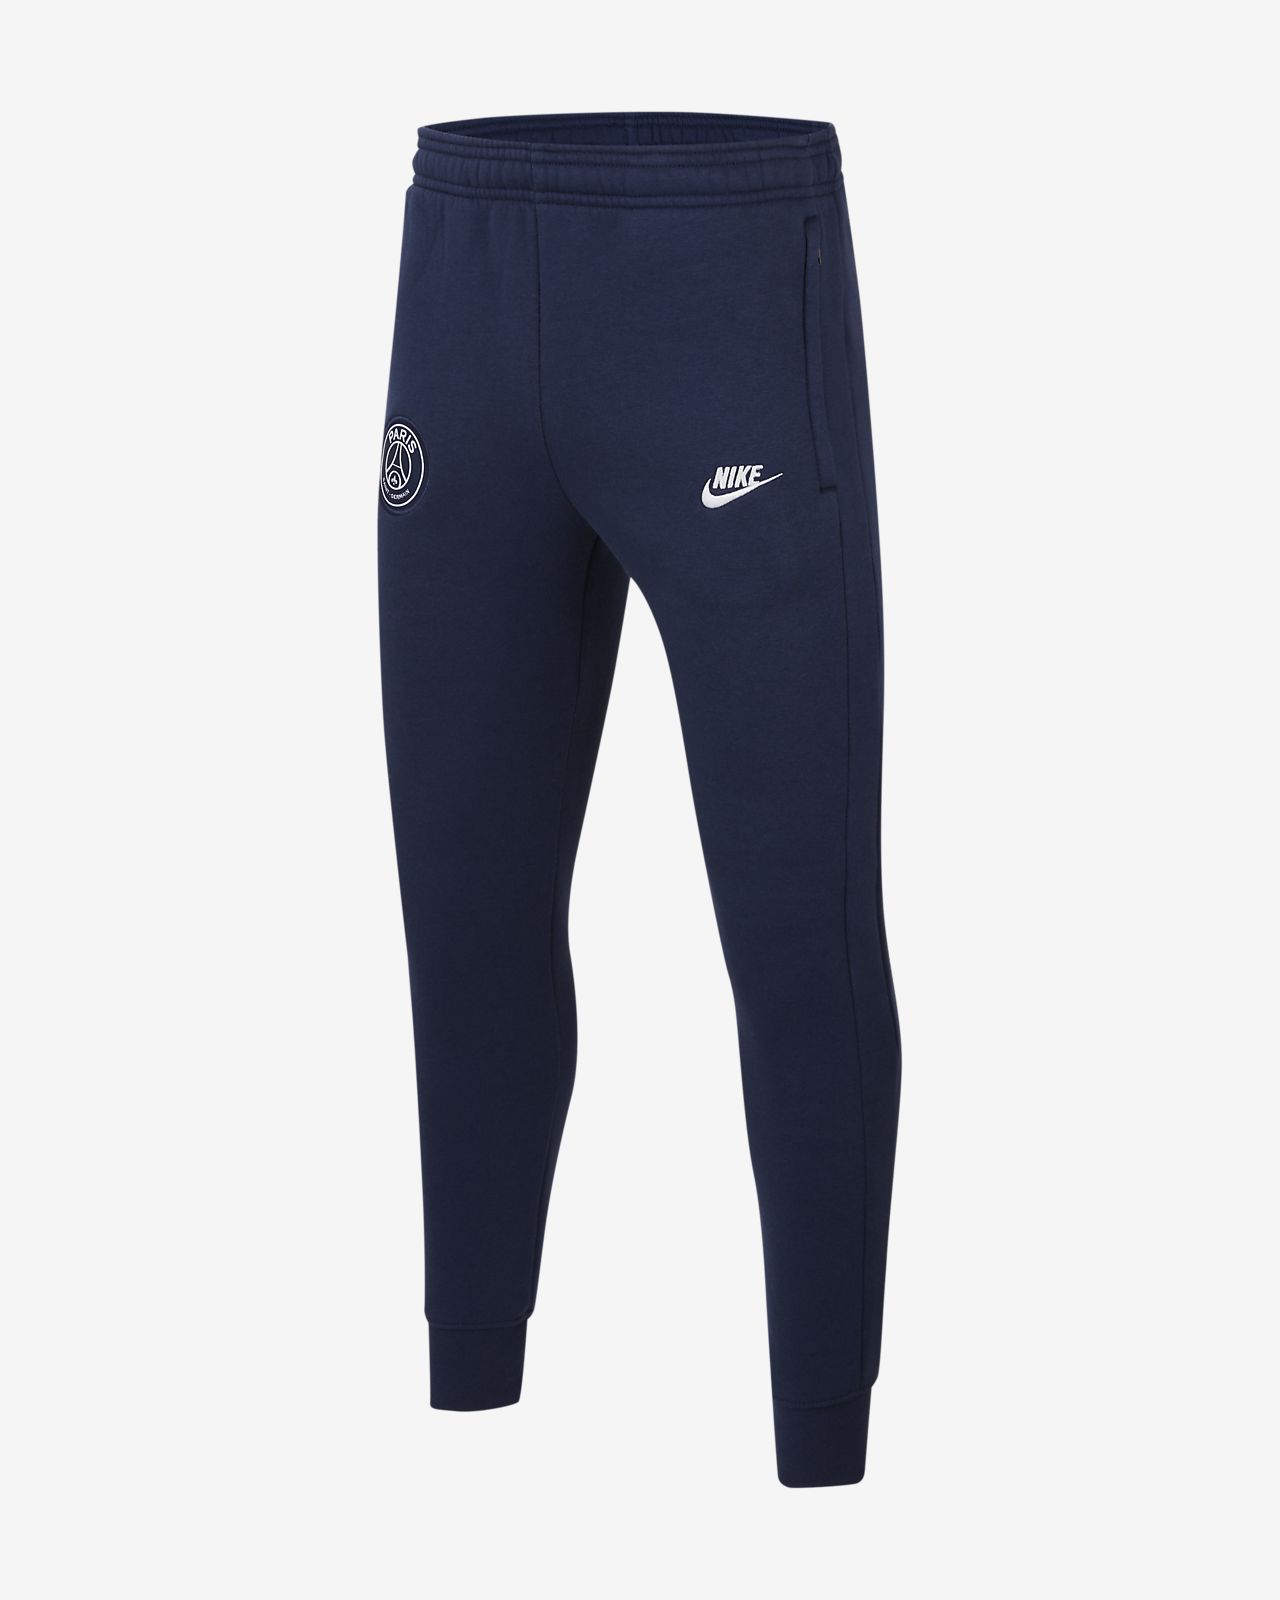 Paris Saint-Germain Pantalons de teixit Fleece - Nen/a